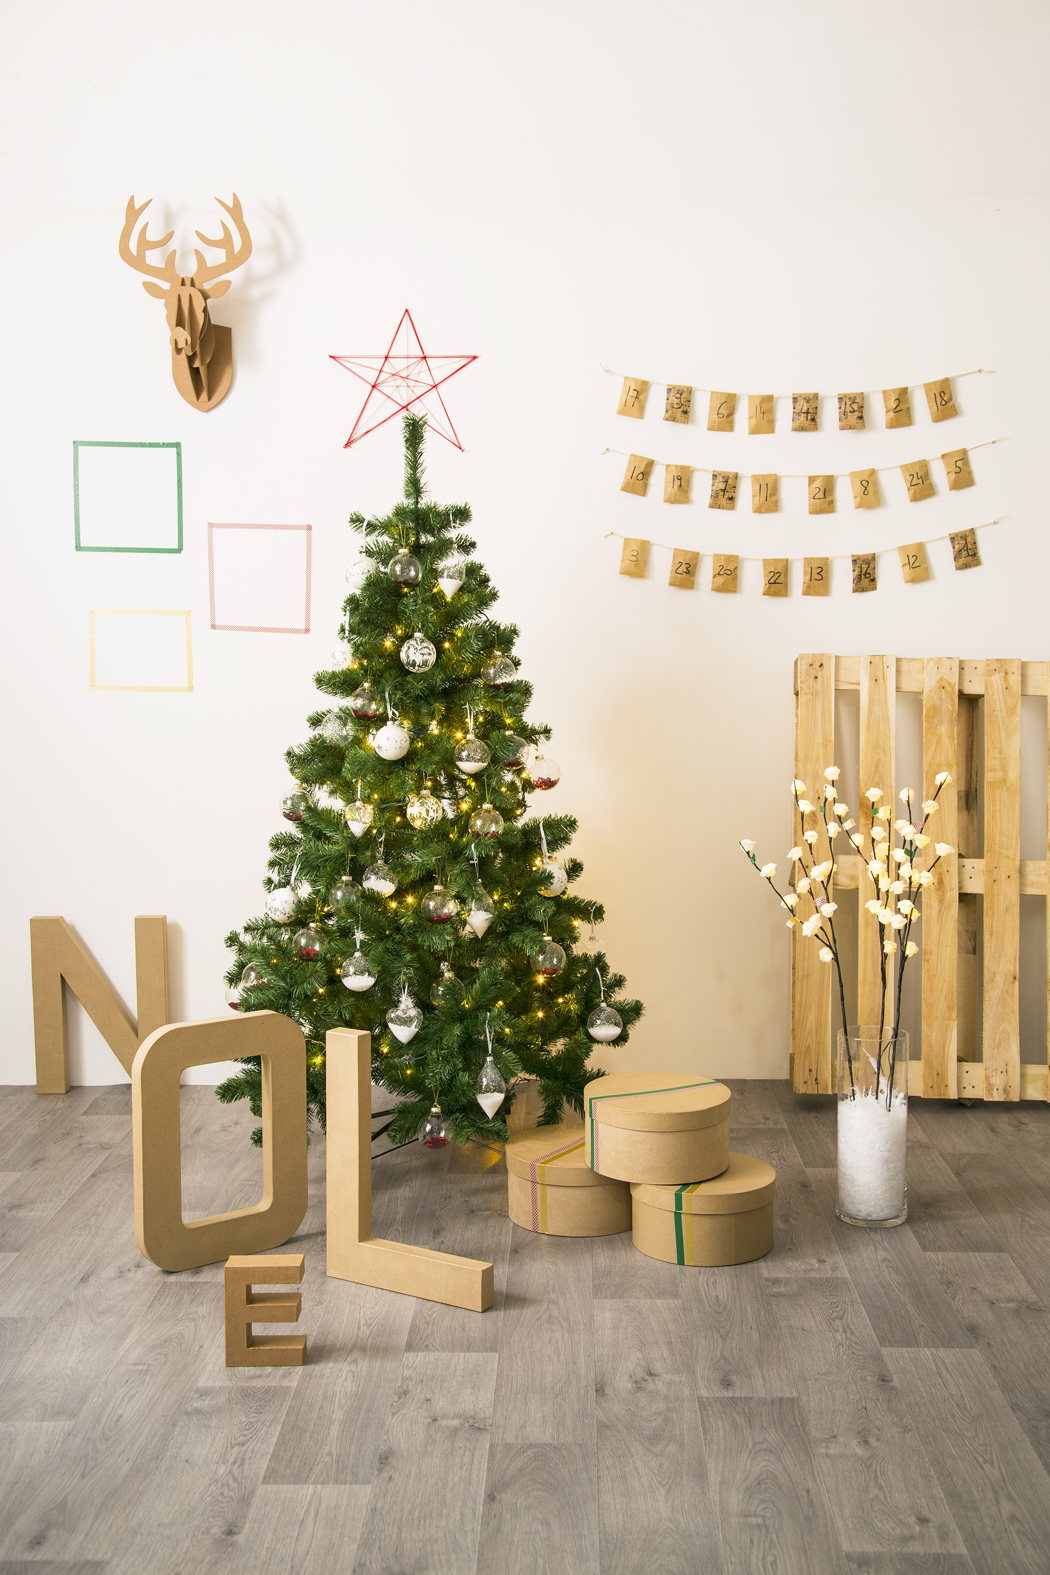 Deco Noel Jardiland Stylisme Noel Do It Yourself Pour Jardiland La Decorruptible